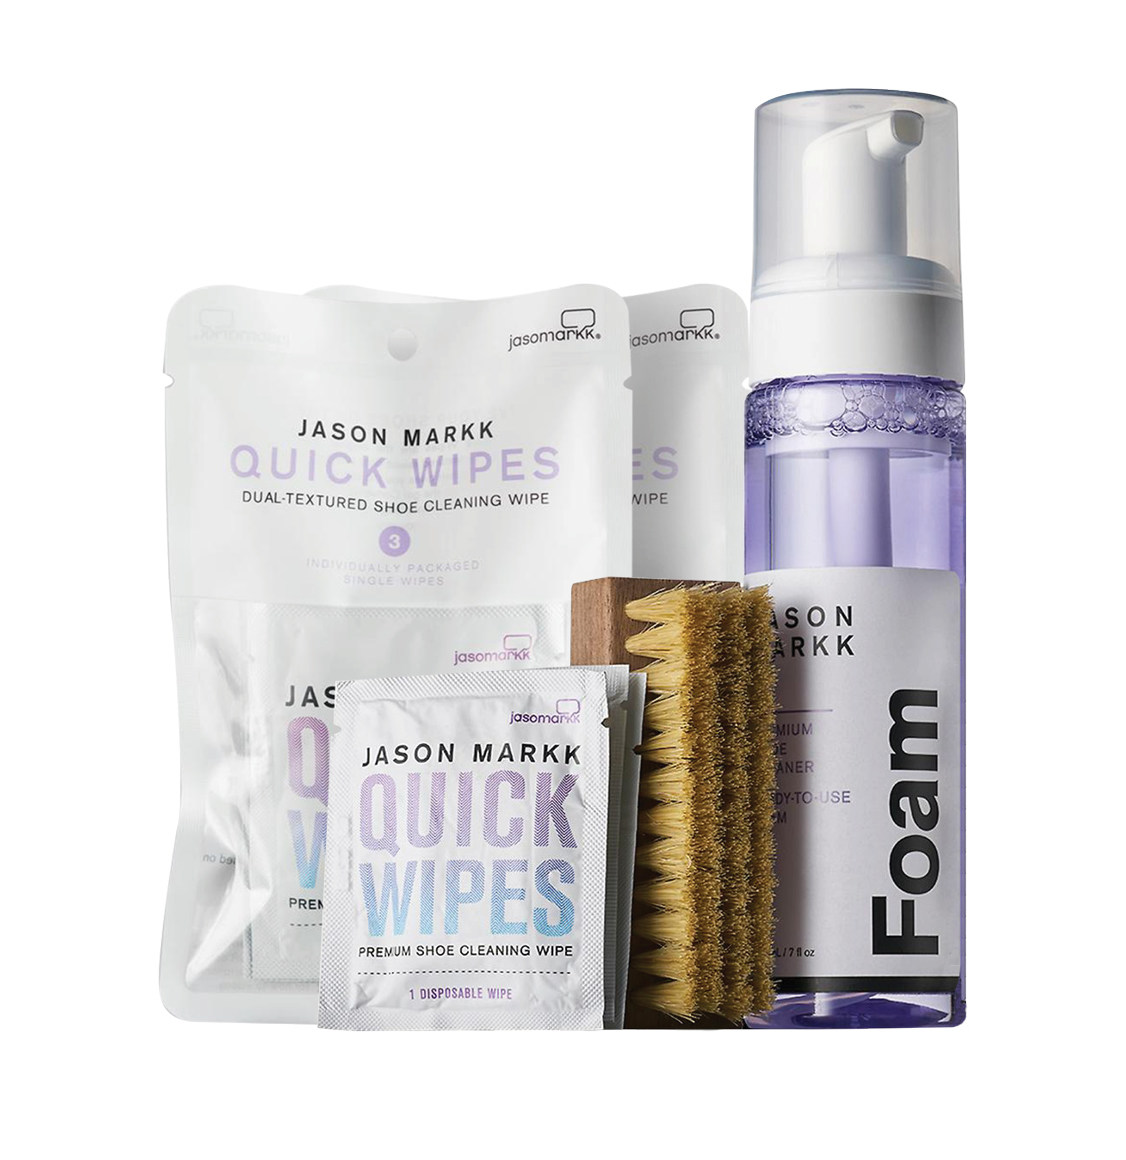 Jason Markk Shoe Cleaning Care Complete Set